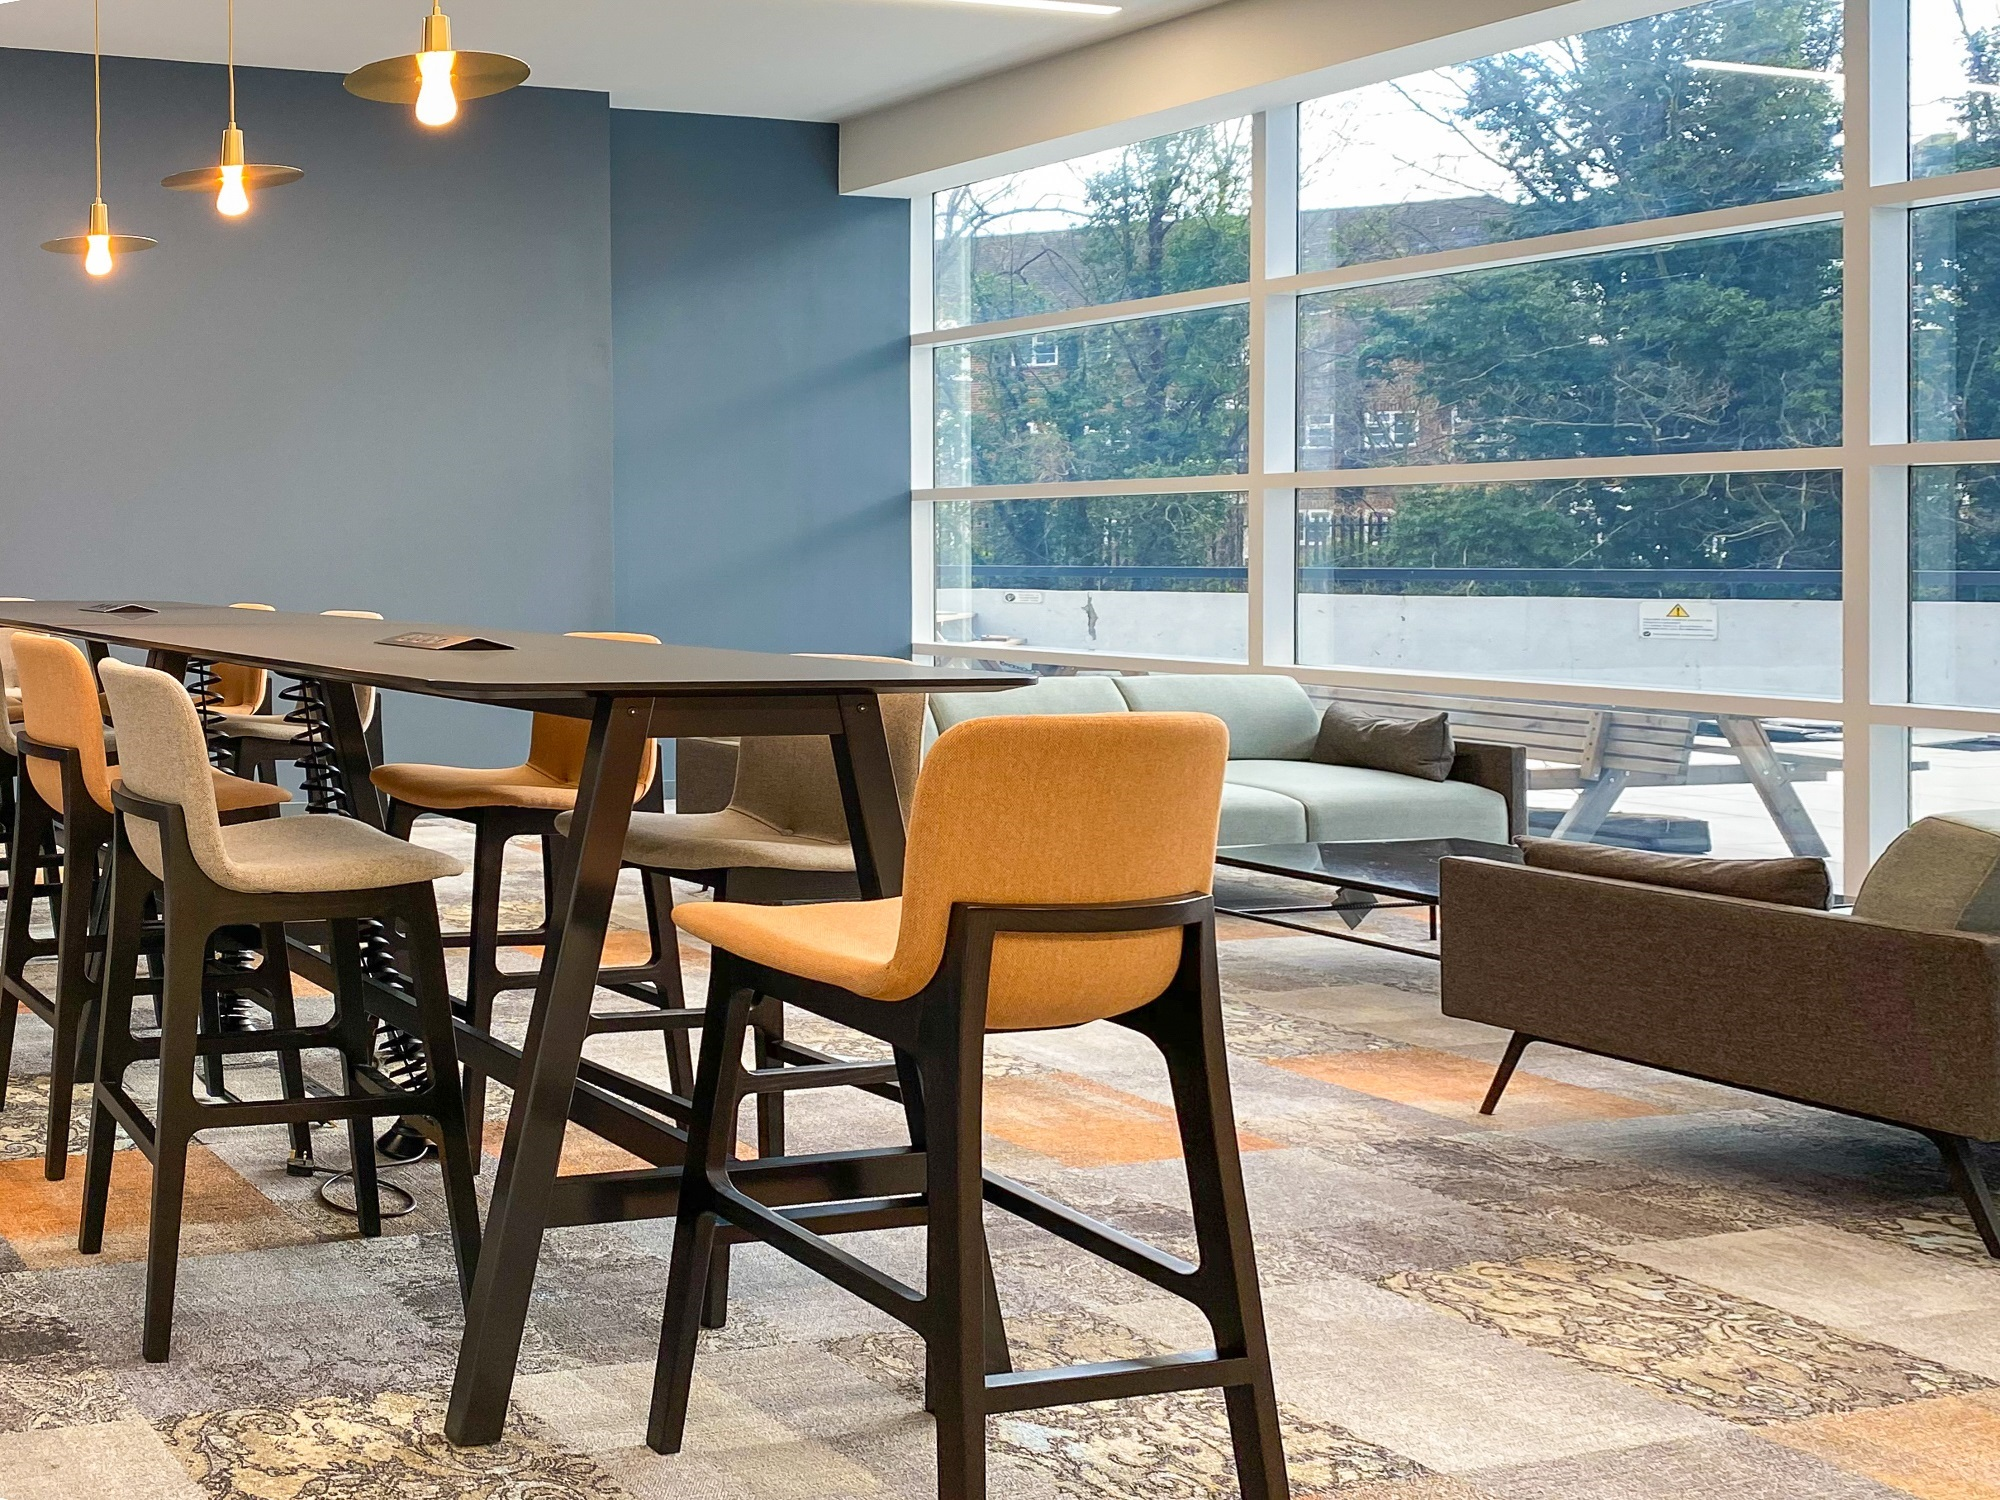 armless stools round a brown table